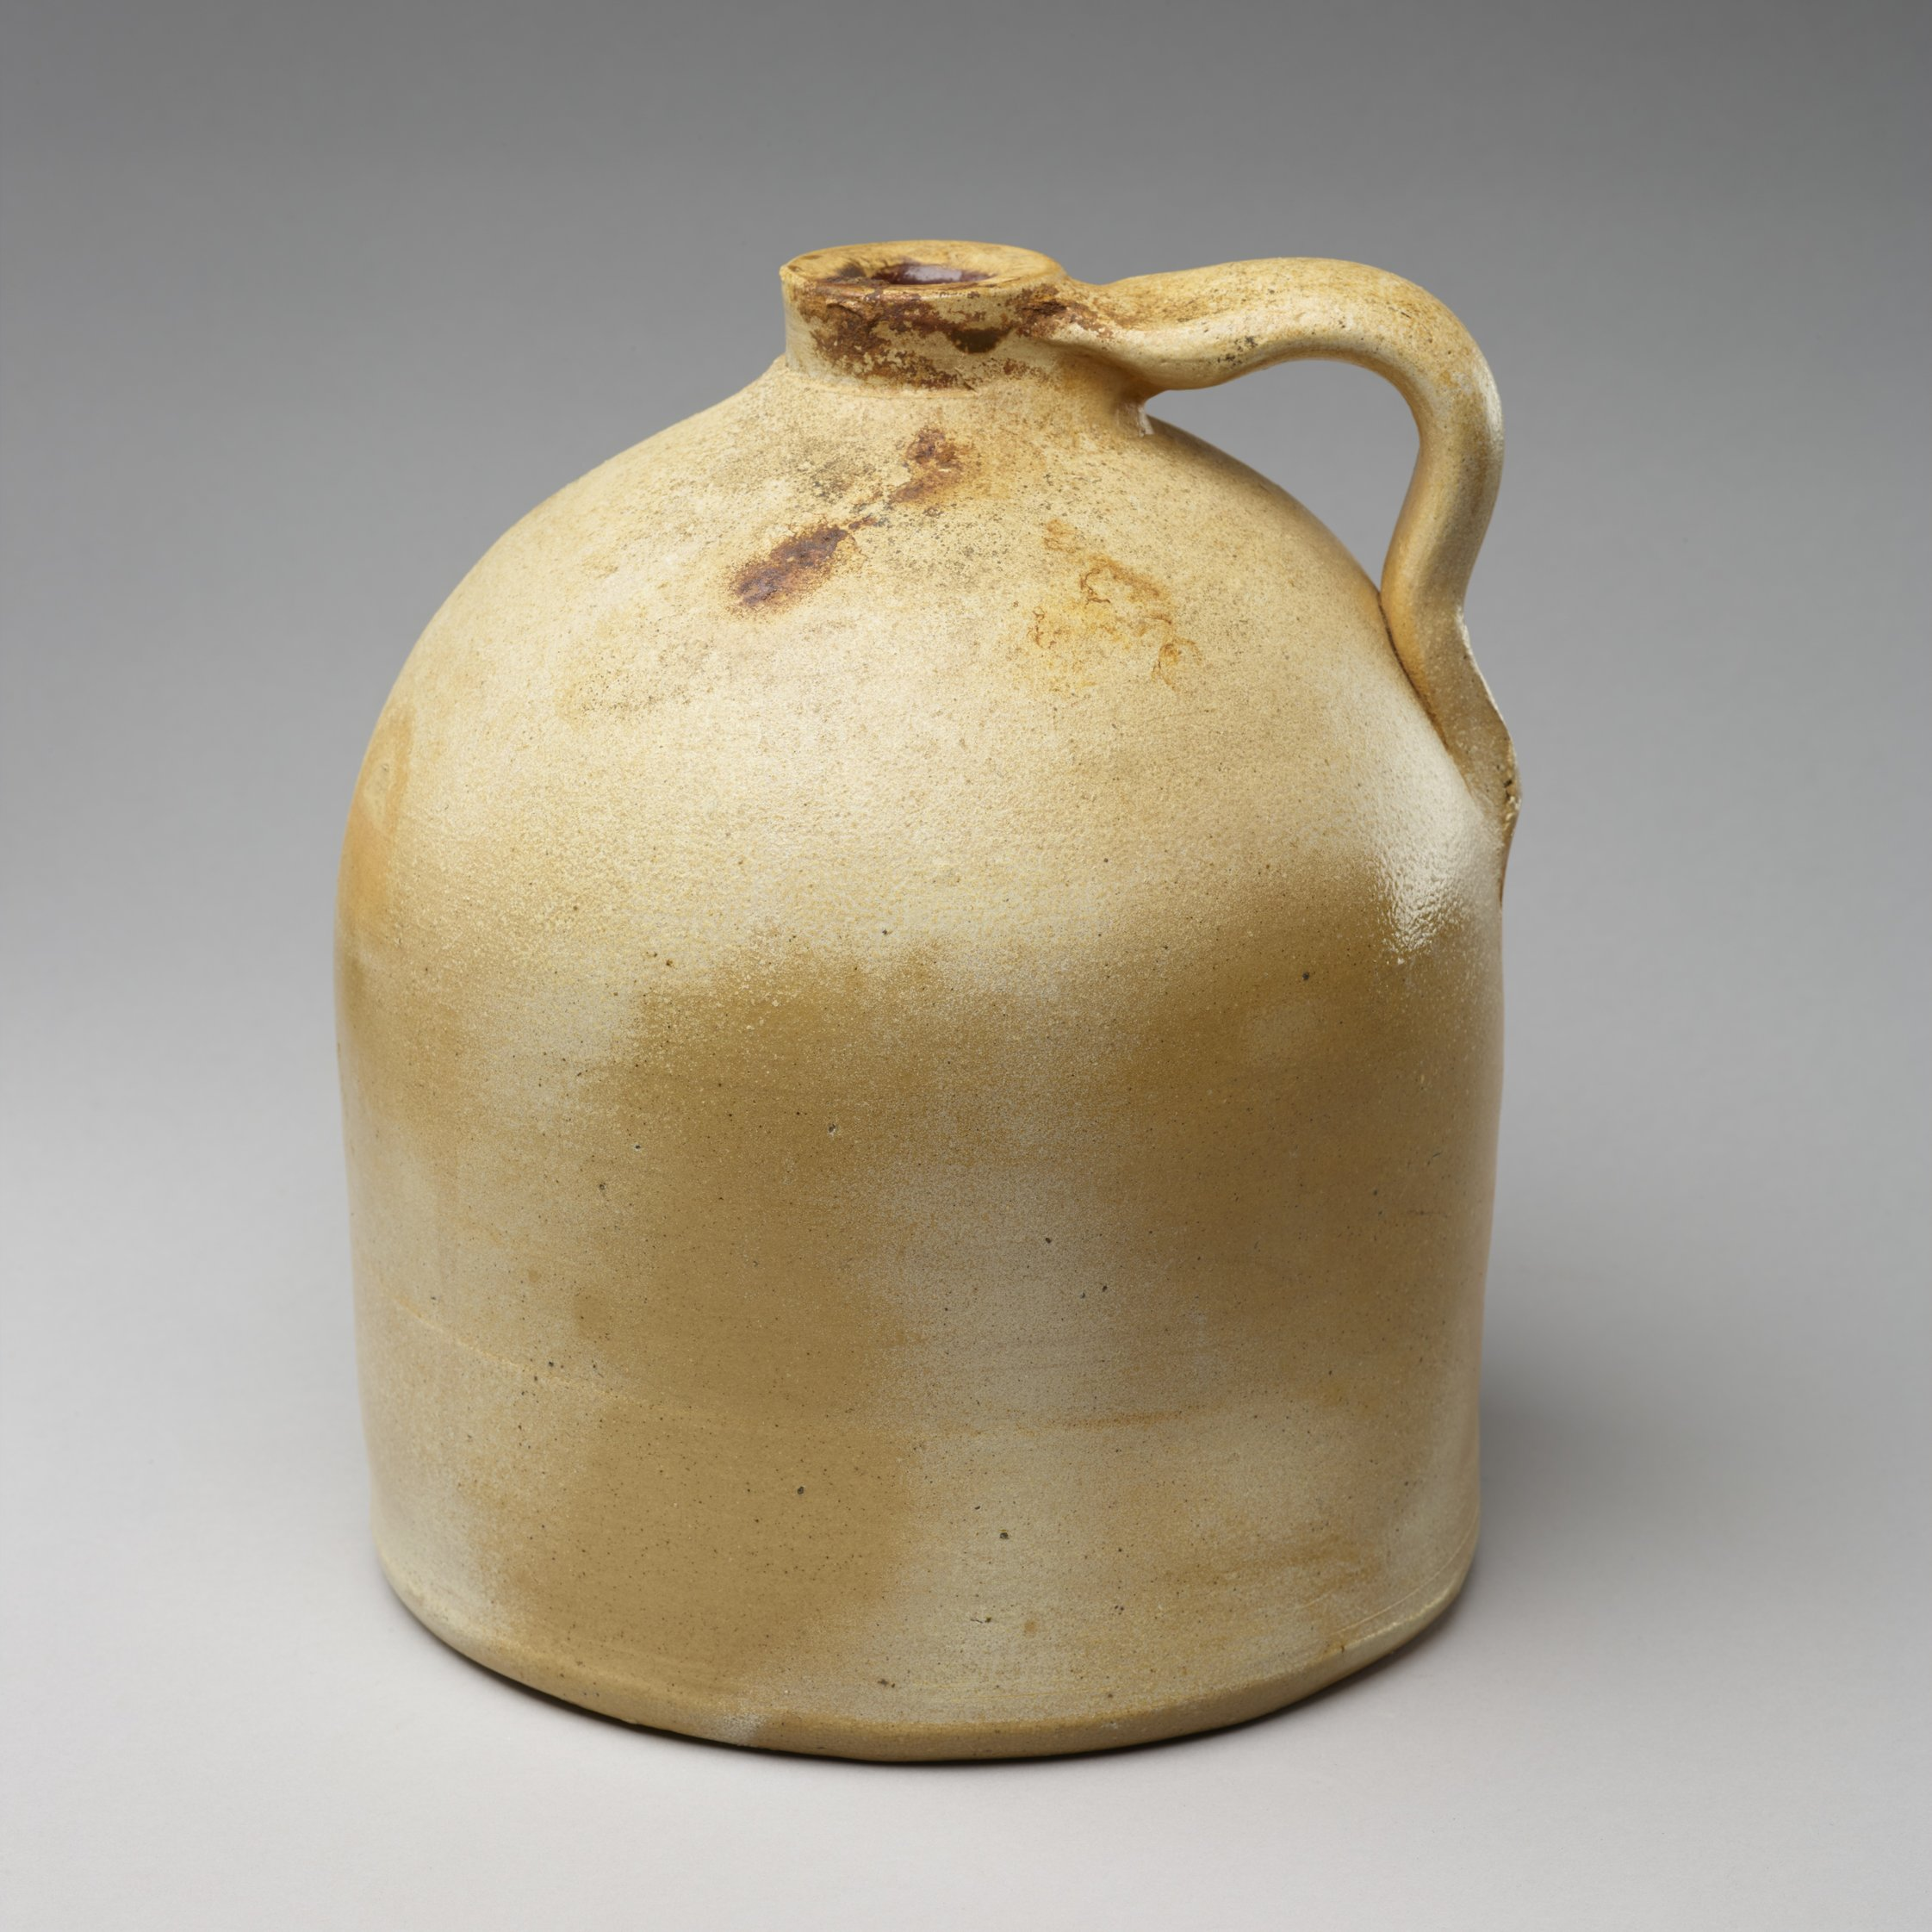 Jug from the Johnson/Palmore Restaurant Site, 14RY382 - 1